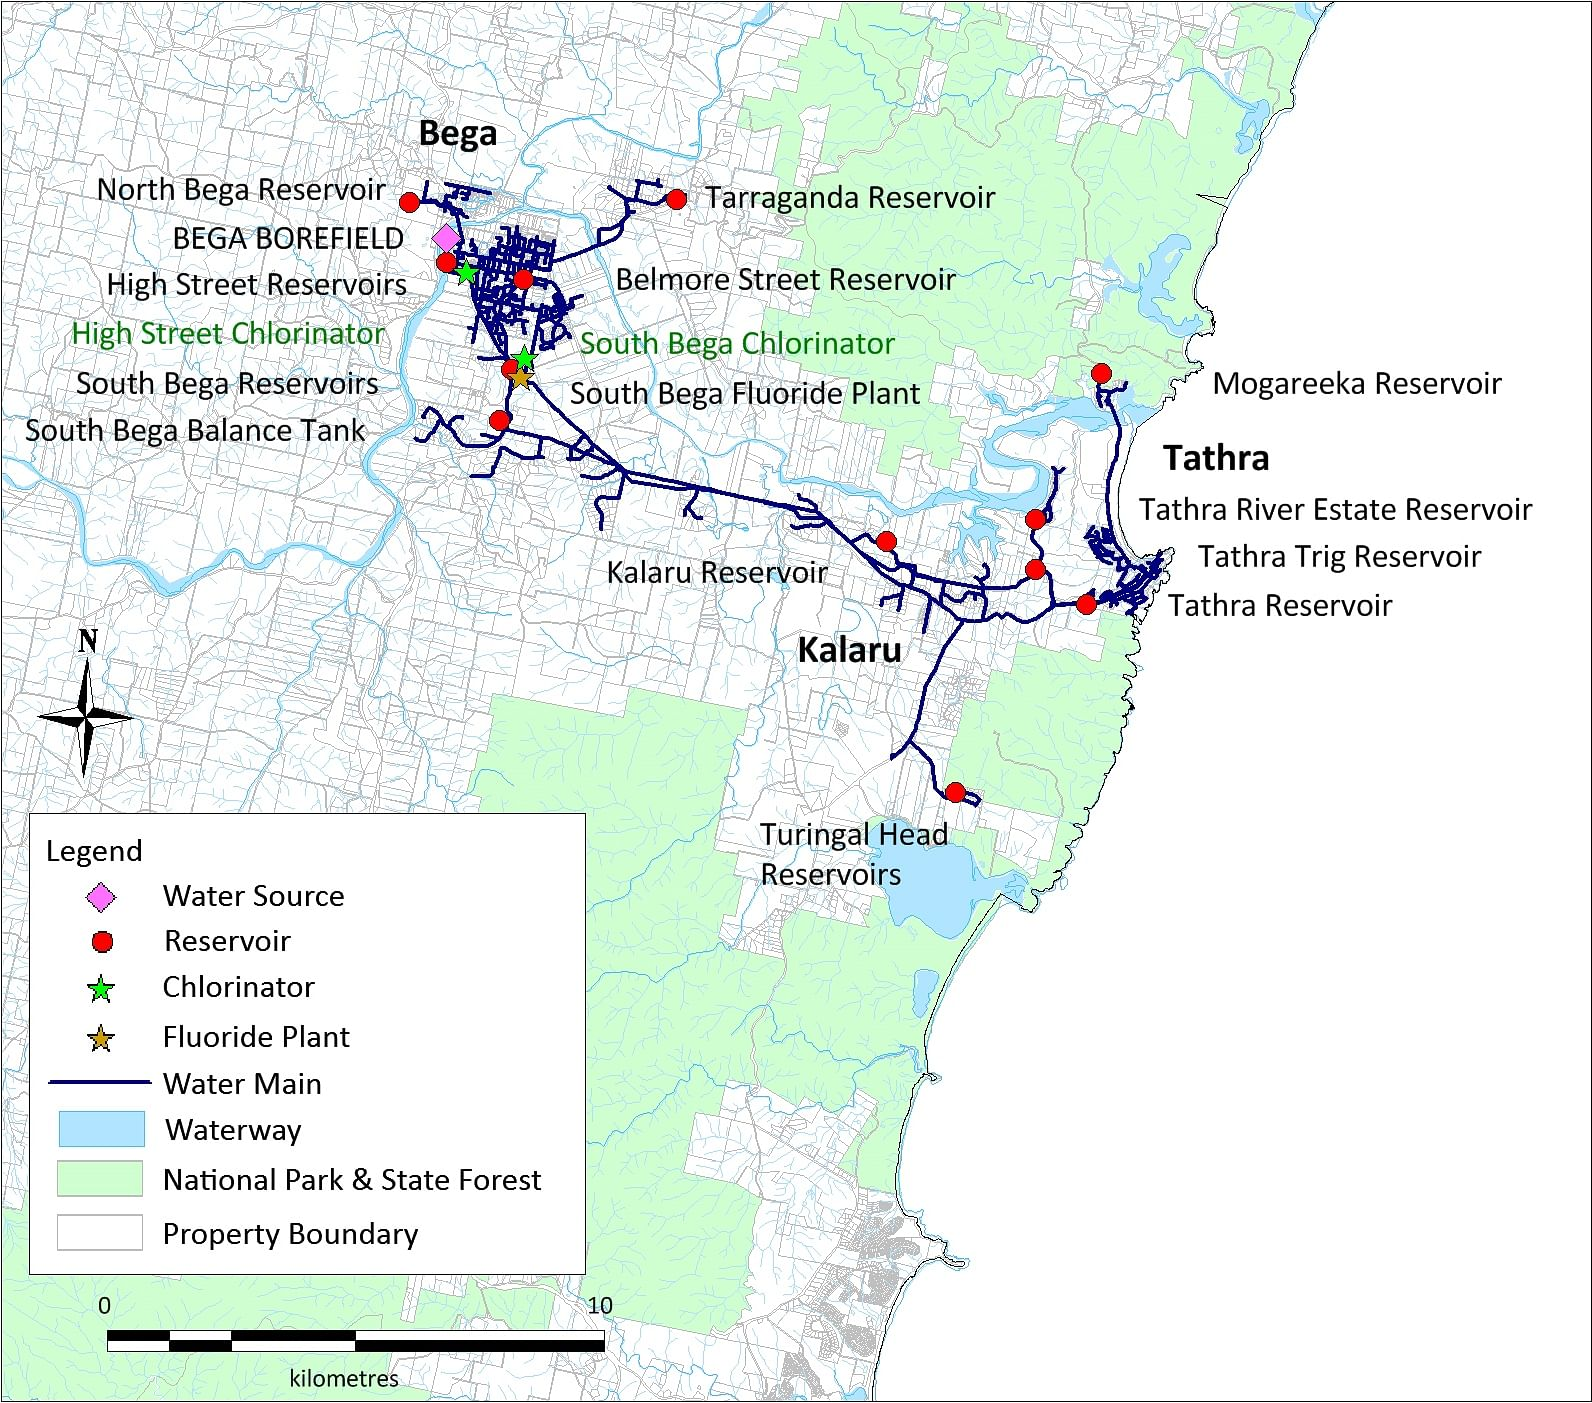 A map of the Bega-Tathra water supply system